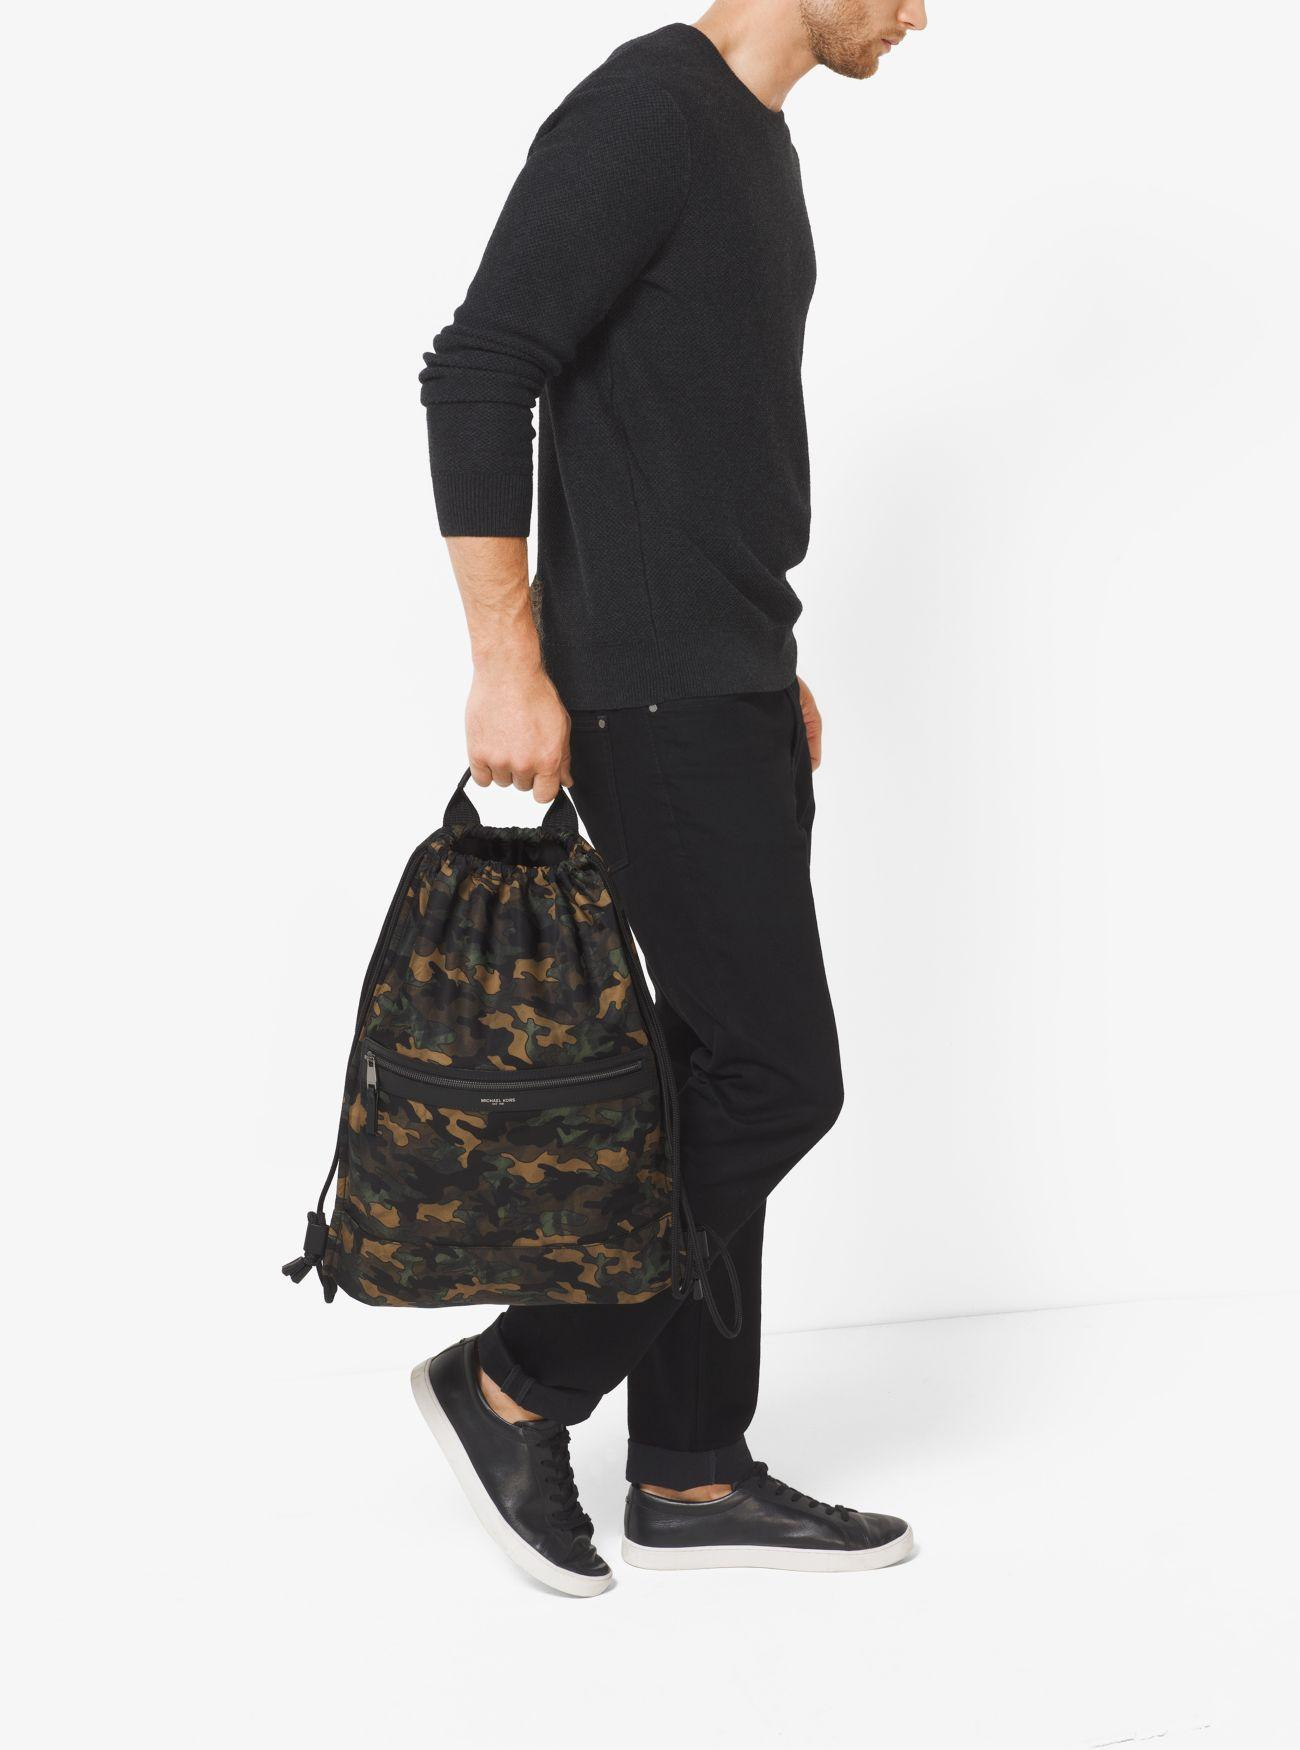 4a59e9737721 ... Michael kors Kent Camouflage Nylon Drawstring Backpack in Bl ...